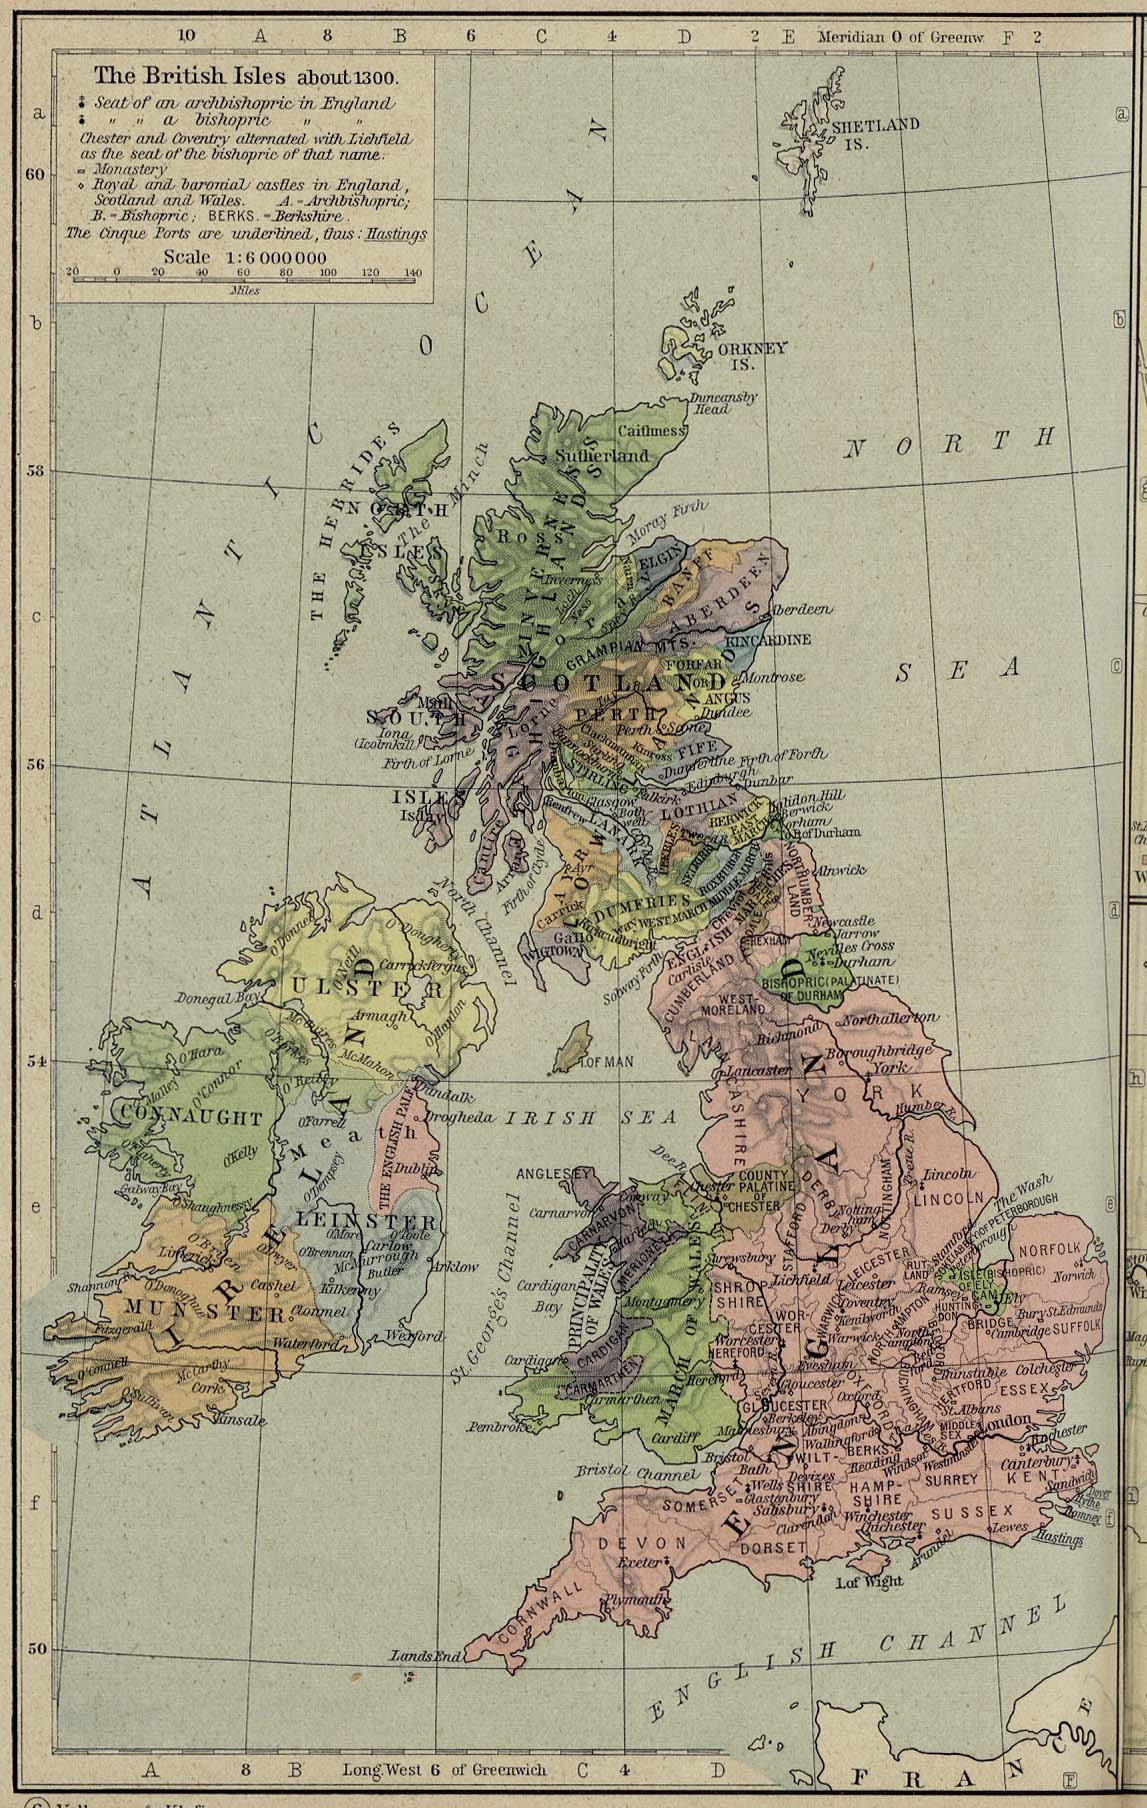 Map of the British Isles about 1300